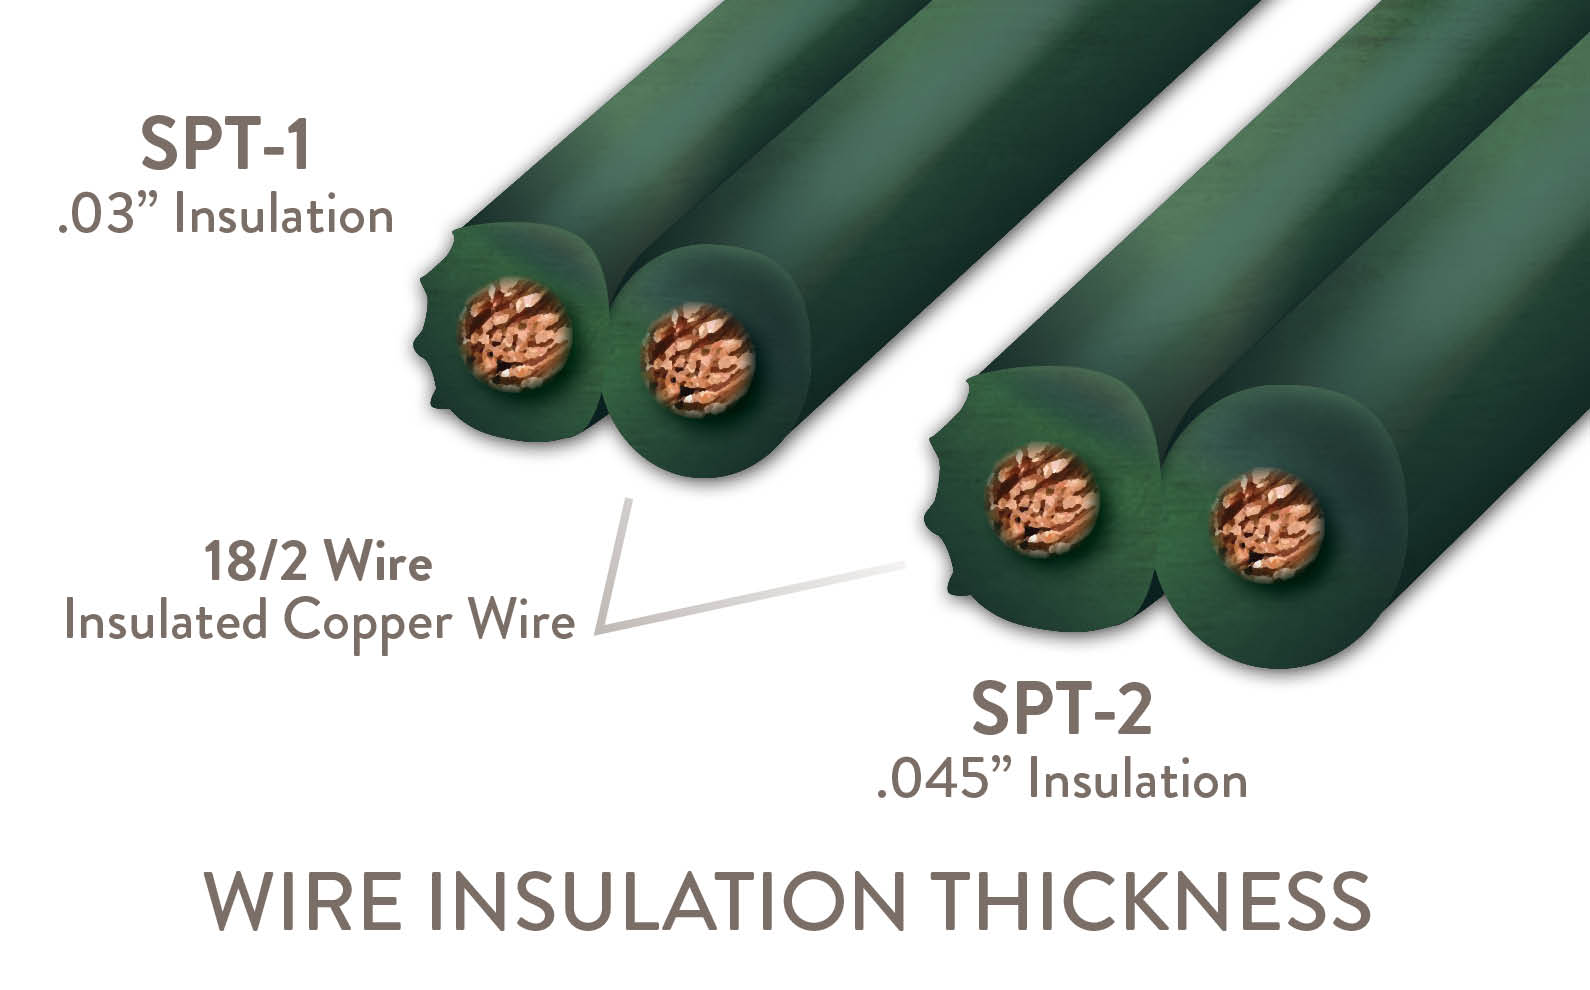 What is the Difference Between SPT-1 and SPT-2 Wire